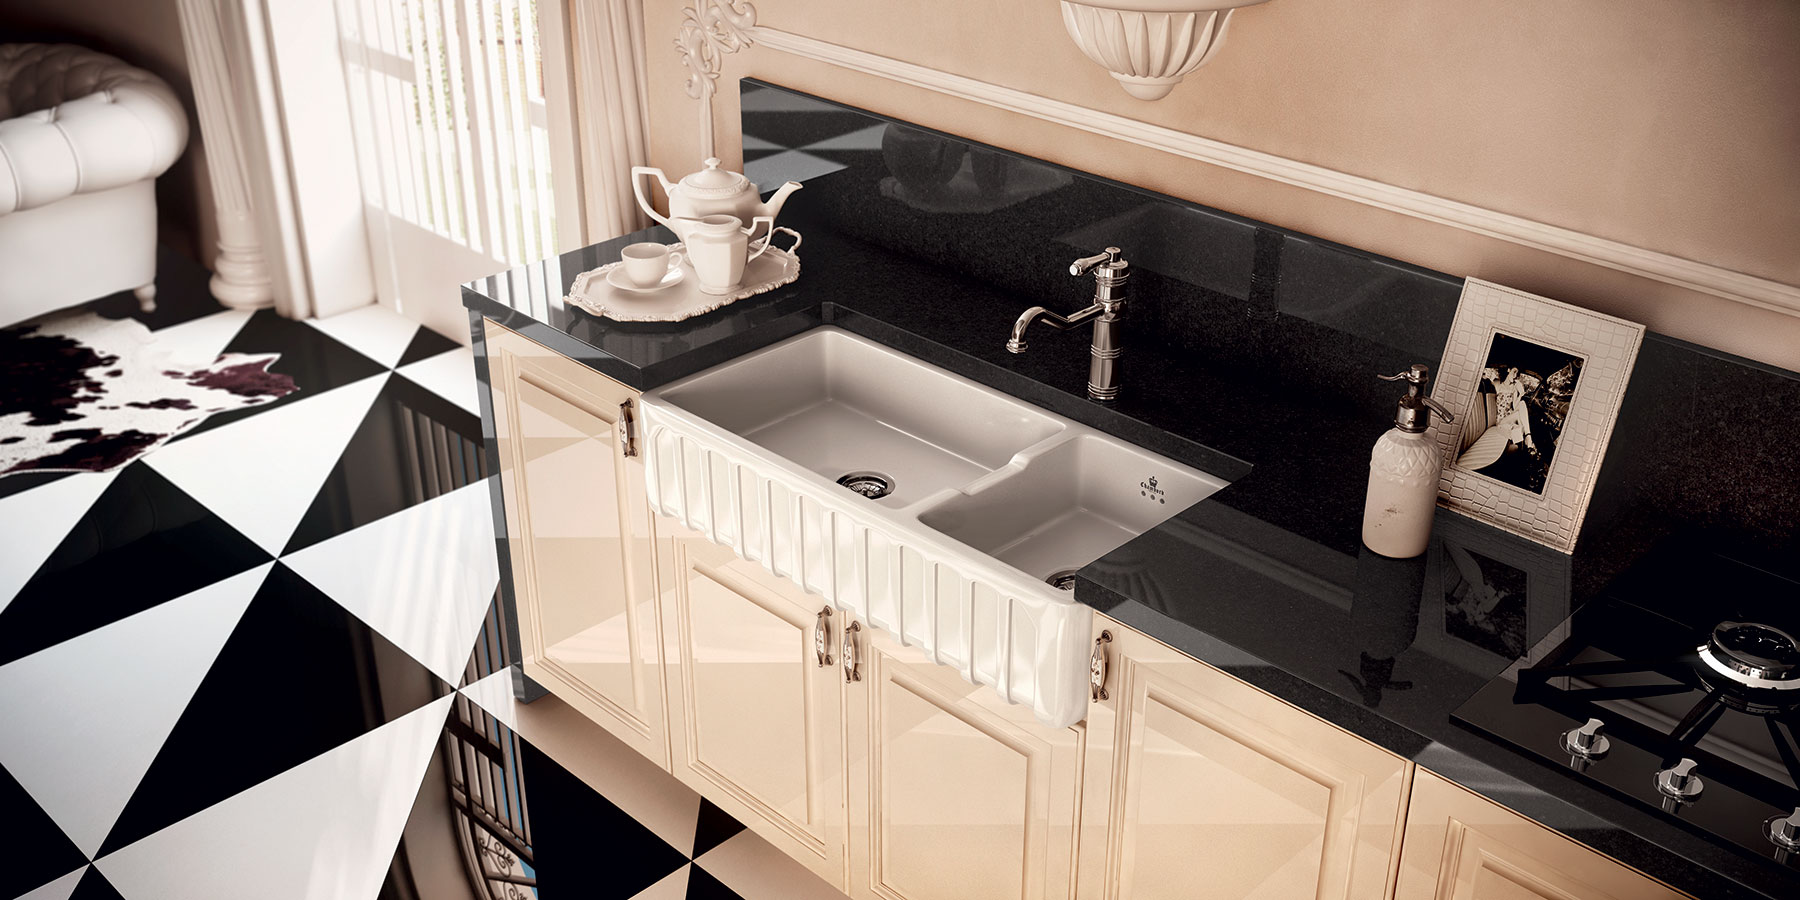 Transitional Louis III Farmhouse Kitchen Sink